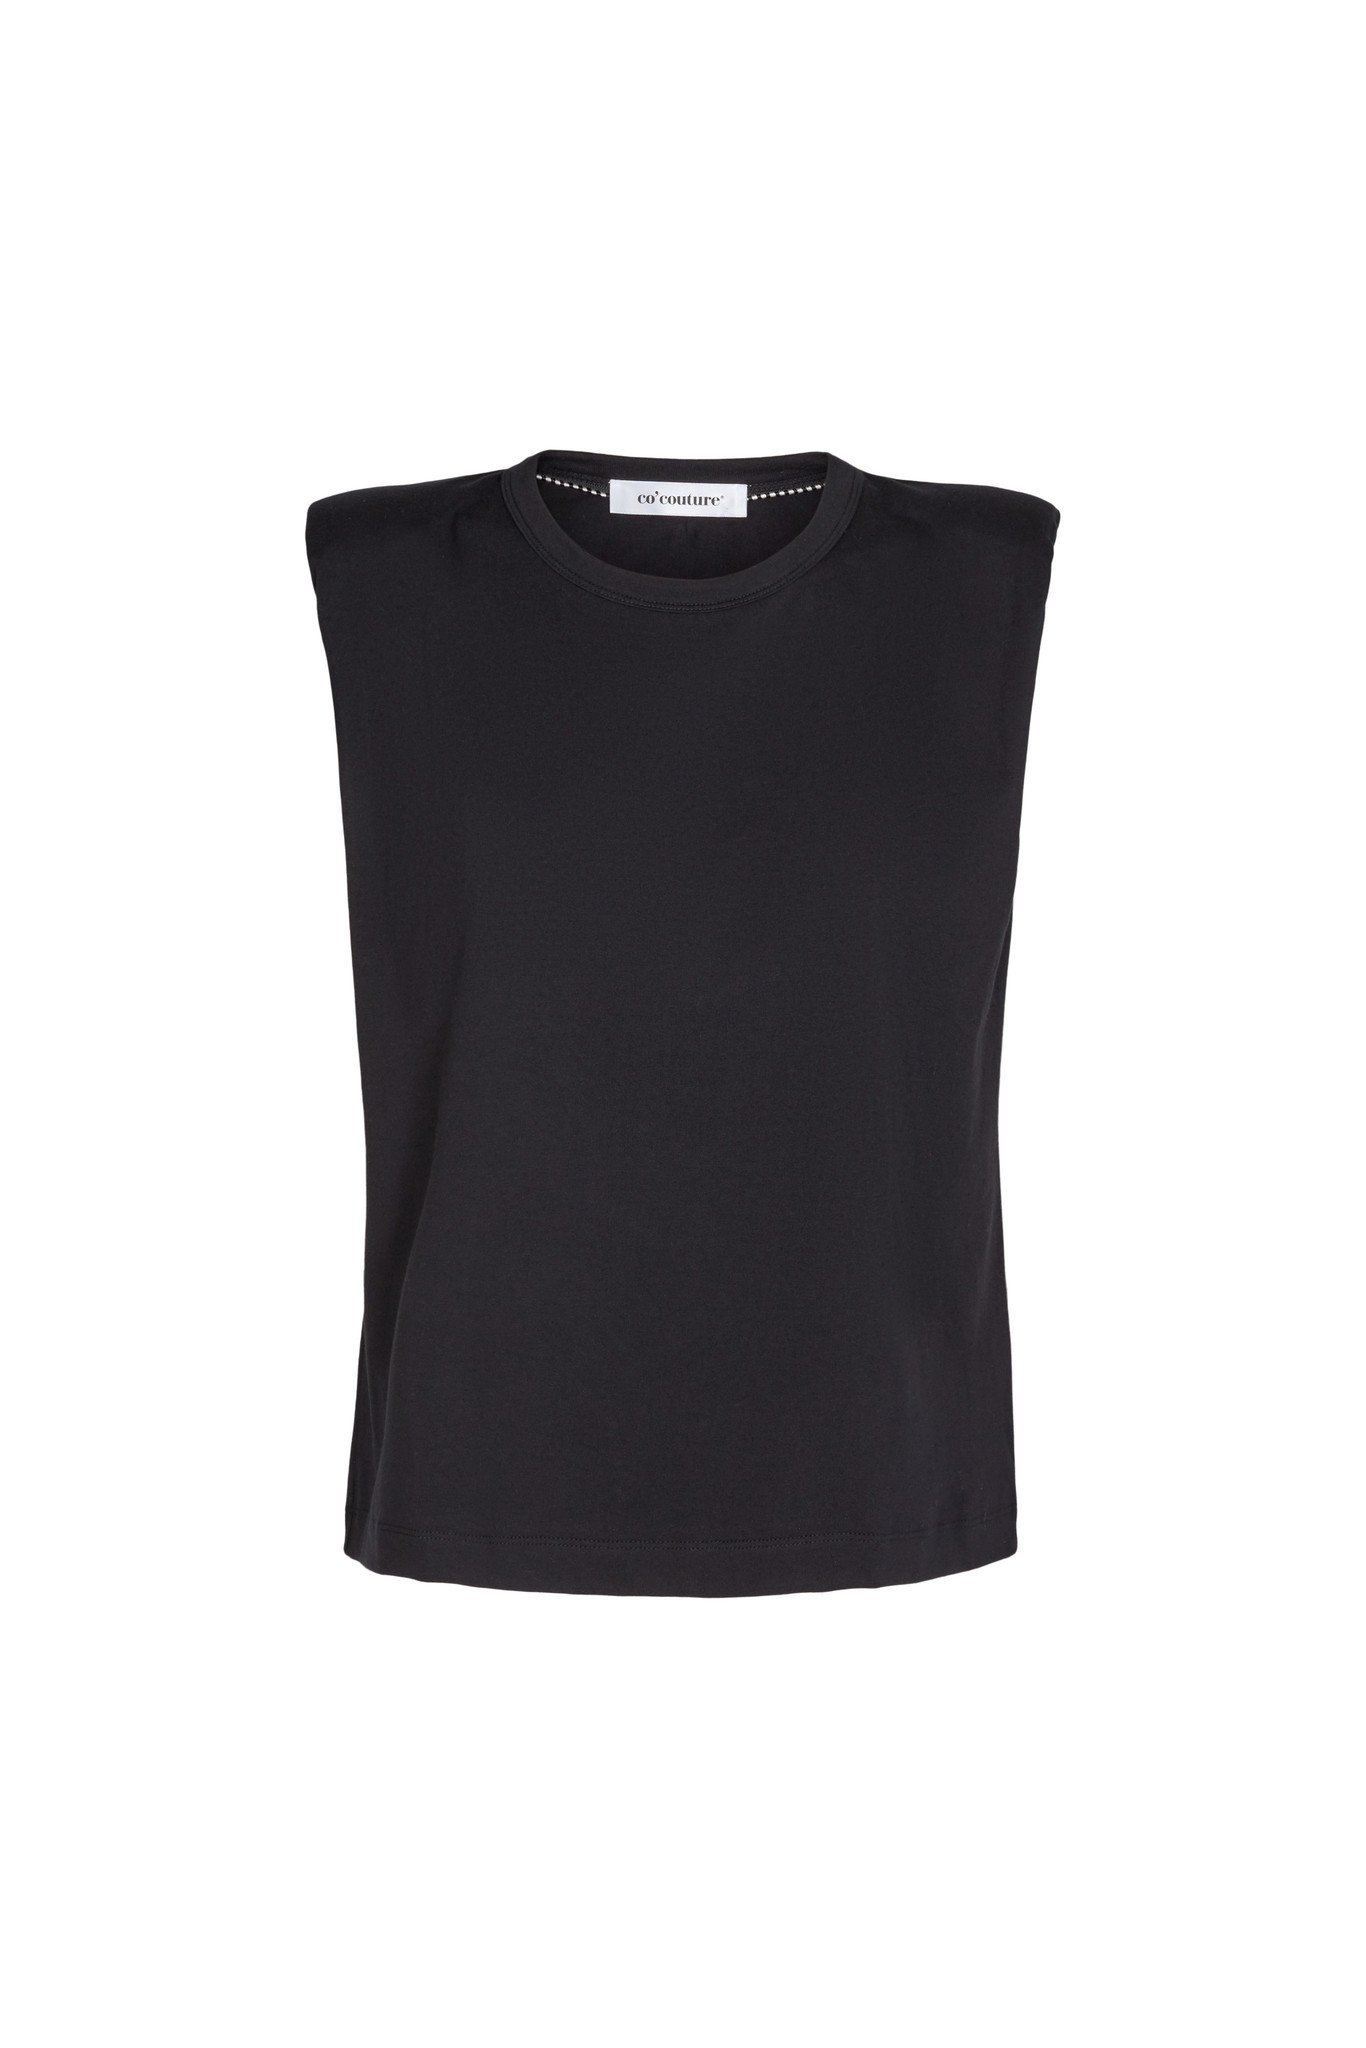 Co Couture Eduarda Tee - Black